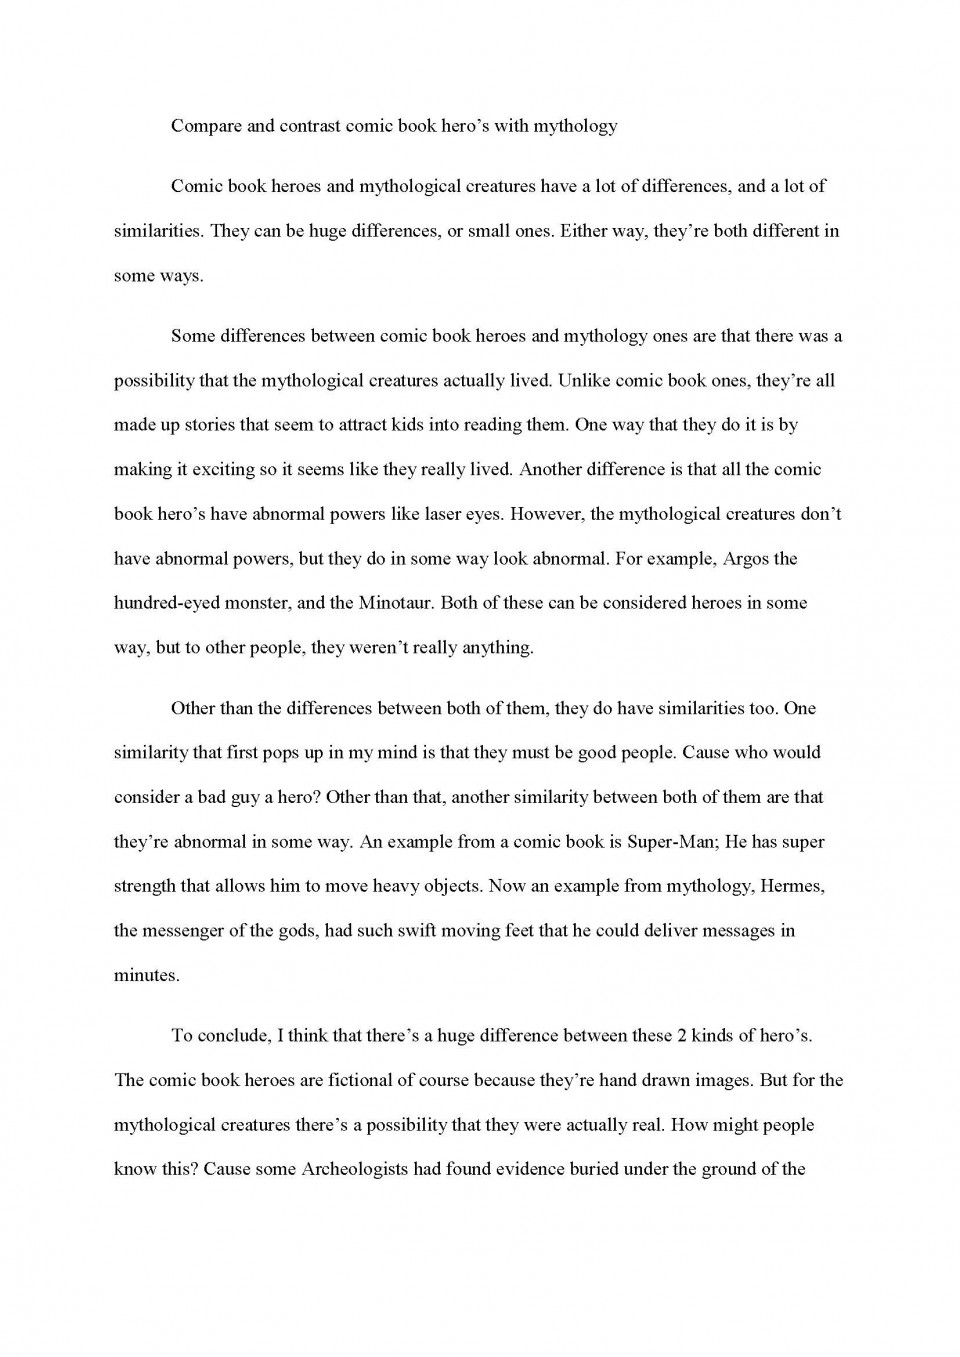 007 How To Outline Compare And Contrast Essay Sampleid8072 Awesome A Create An For 960